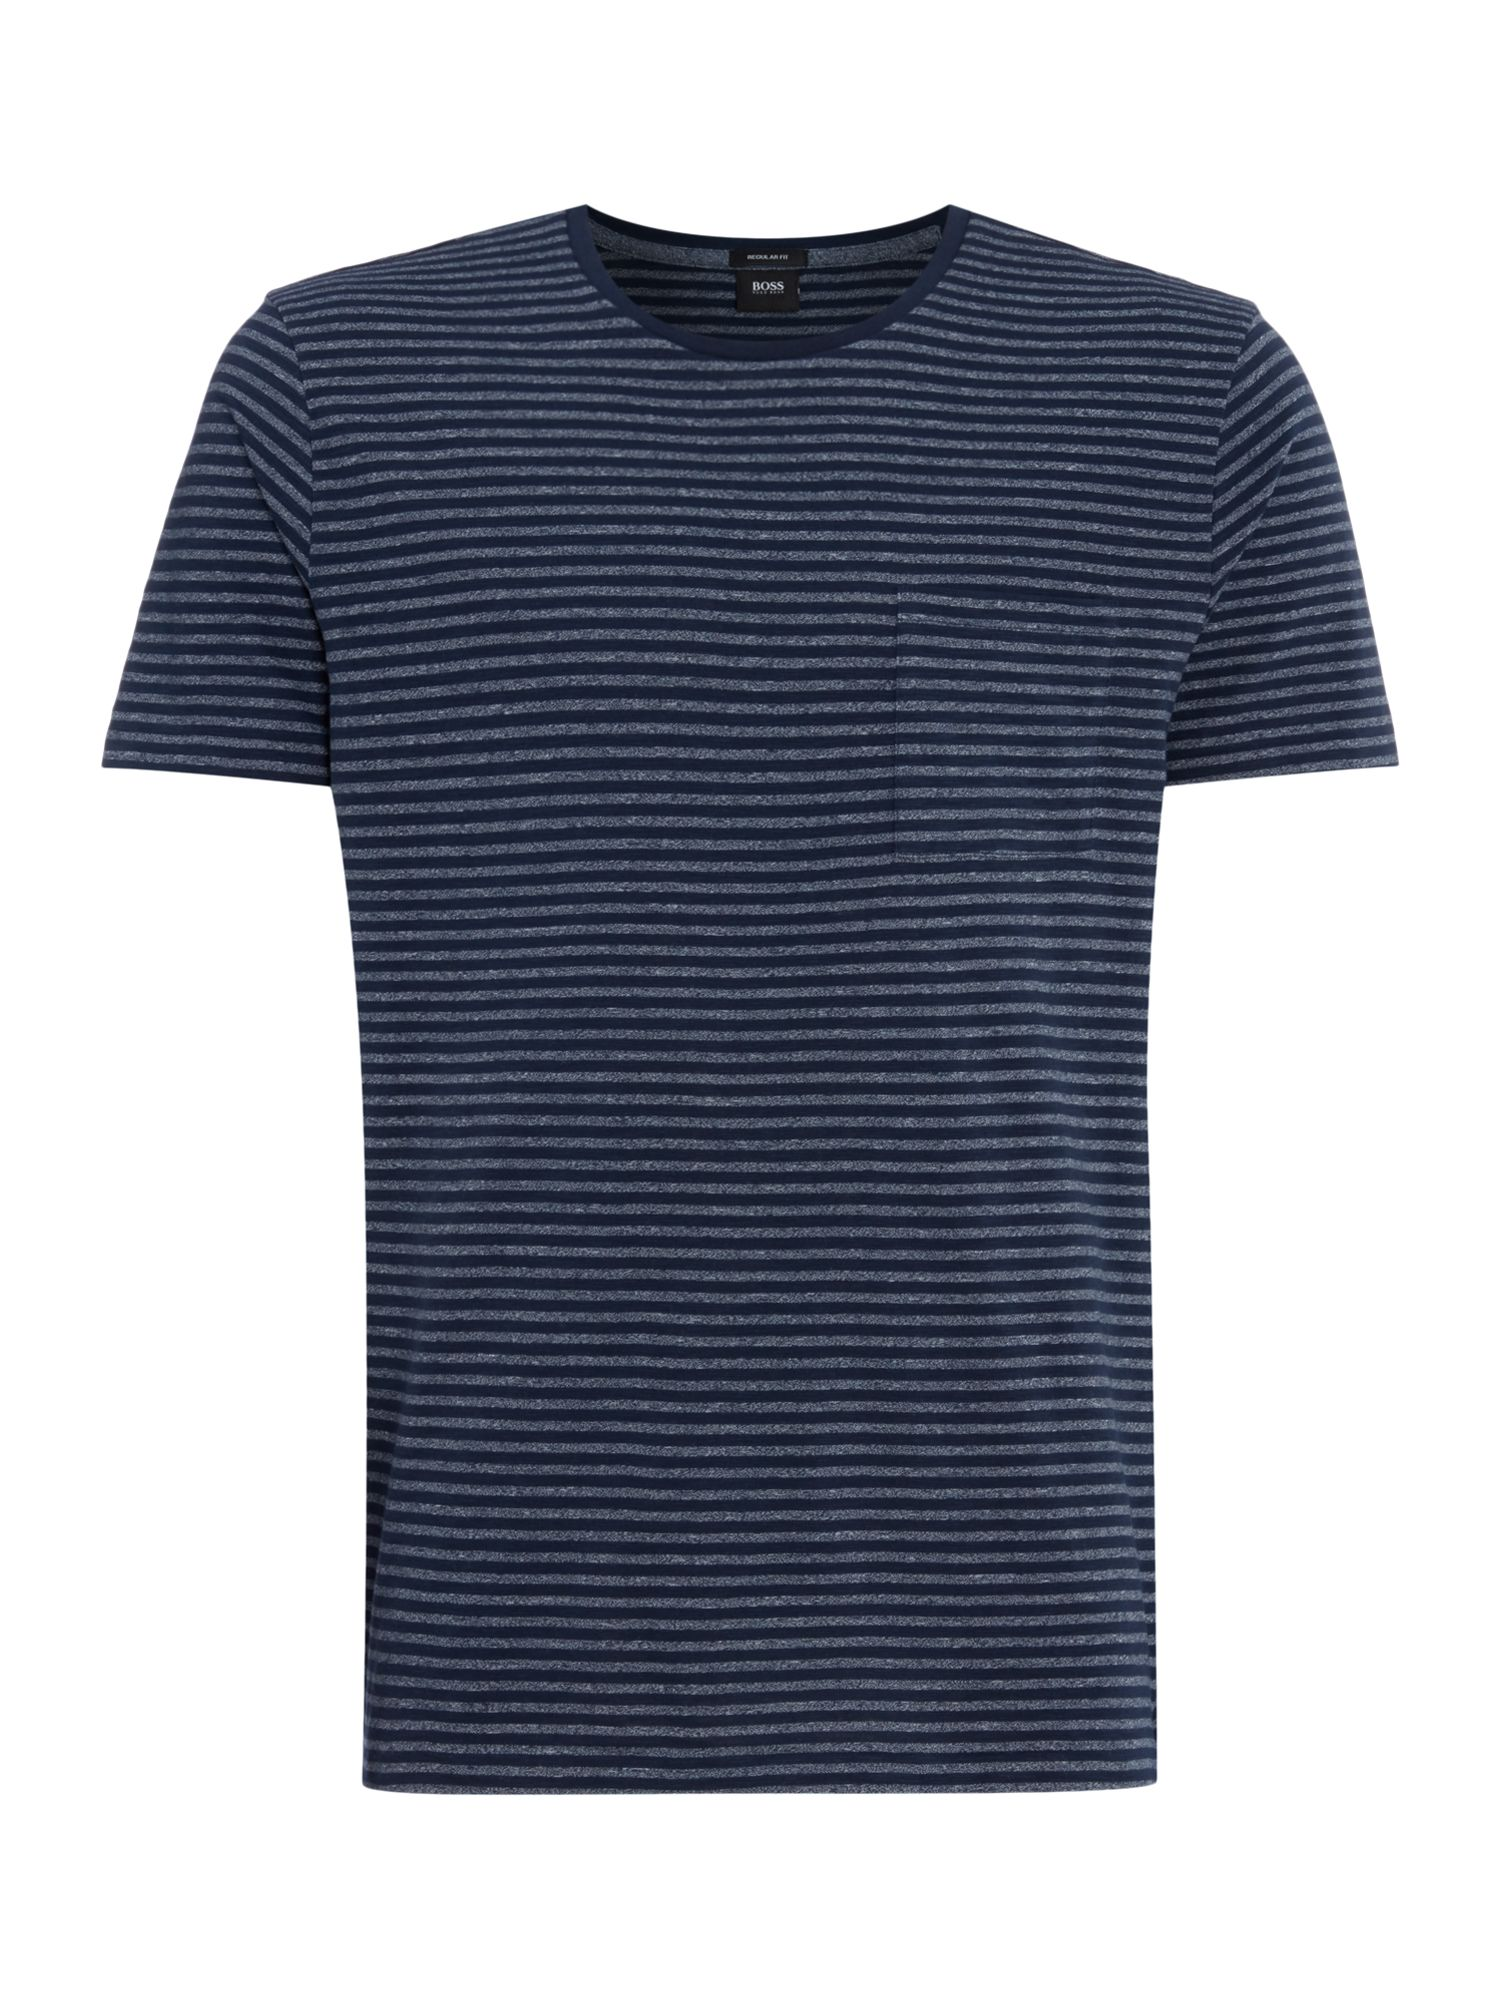 Men's Hugo Boss Striped Regular Fit T-Shirt, Blue